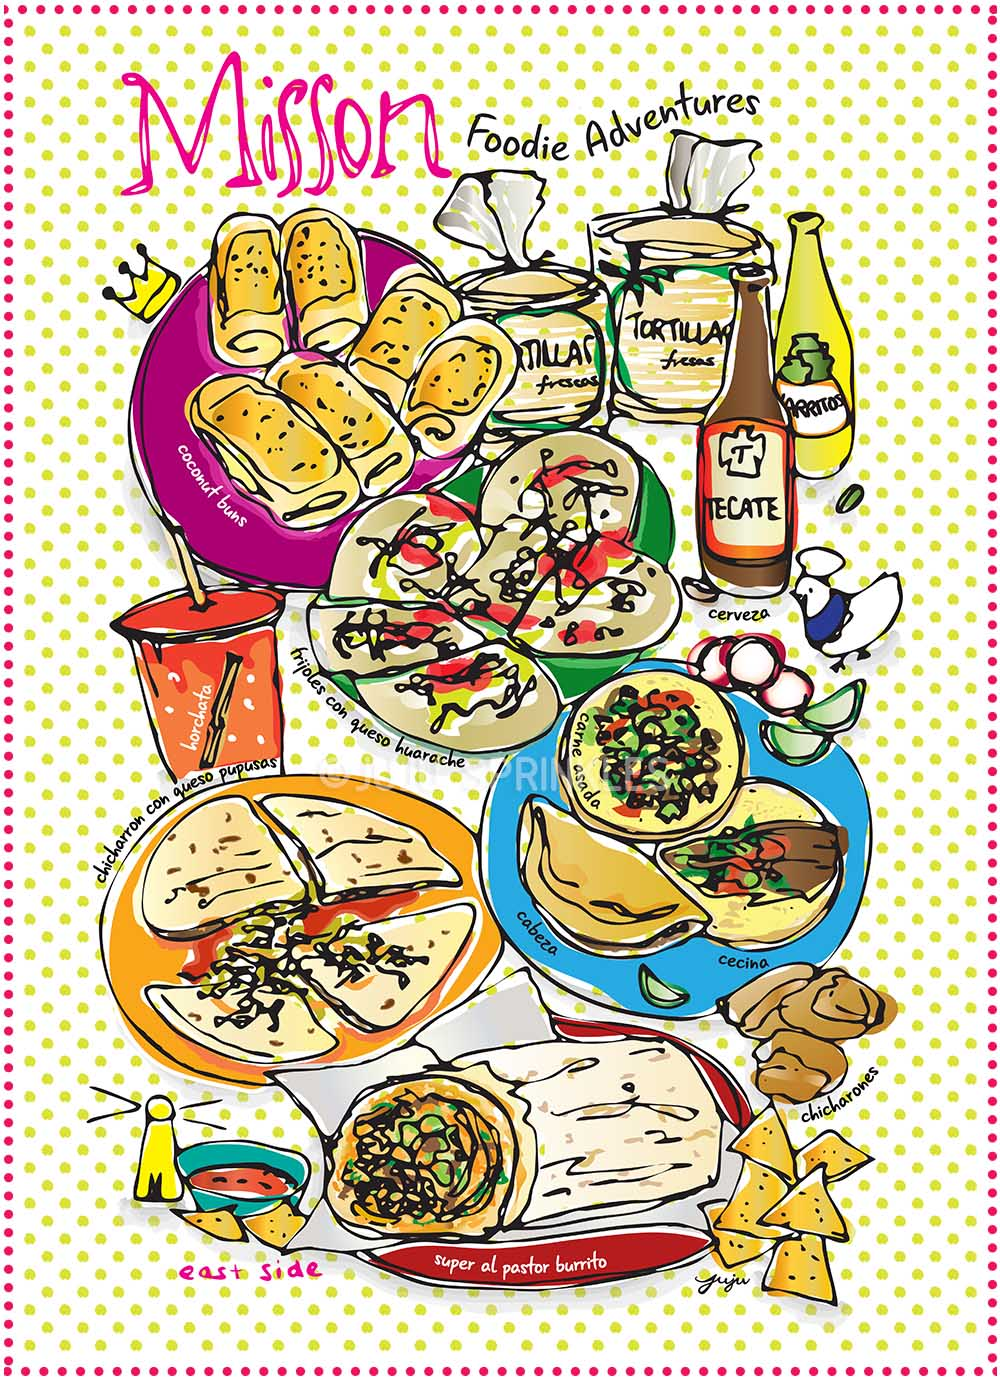 Mission Foodie Adventure Poster Dots